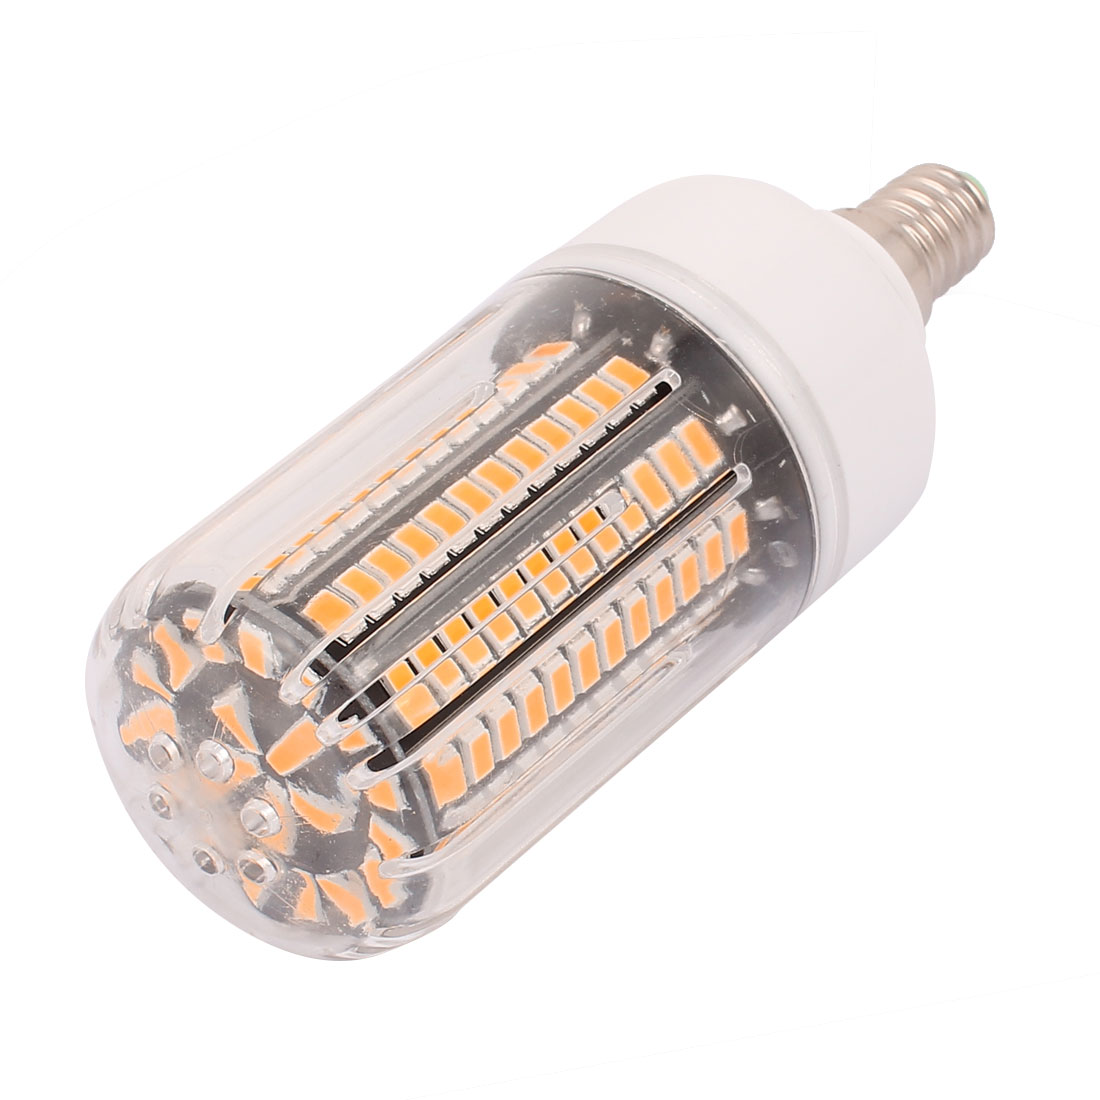 85V~265V 18W 140 x 5736SMD E14 LED Corn Bulb Light Lamp Energy Saving Warm White